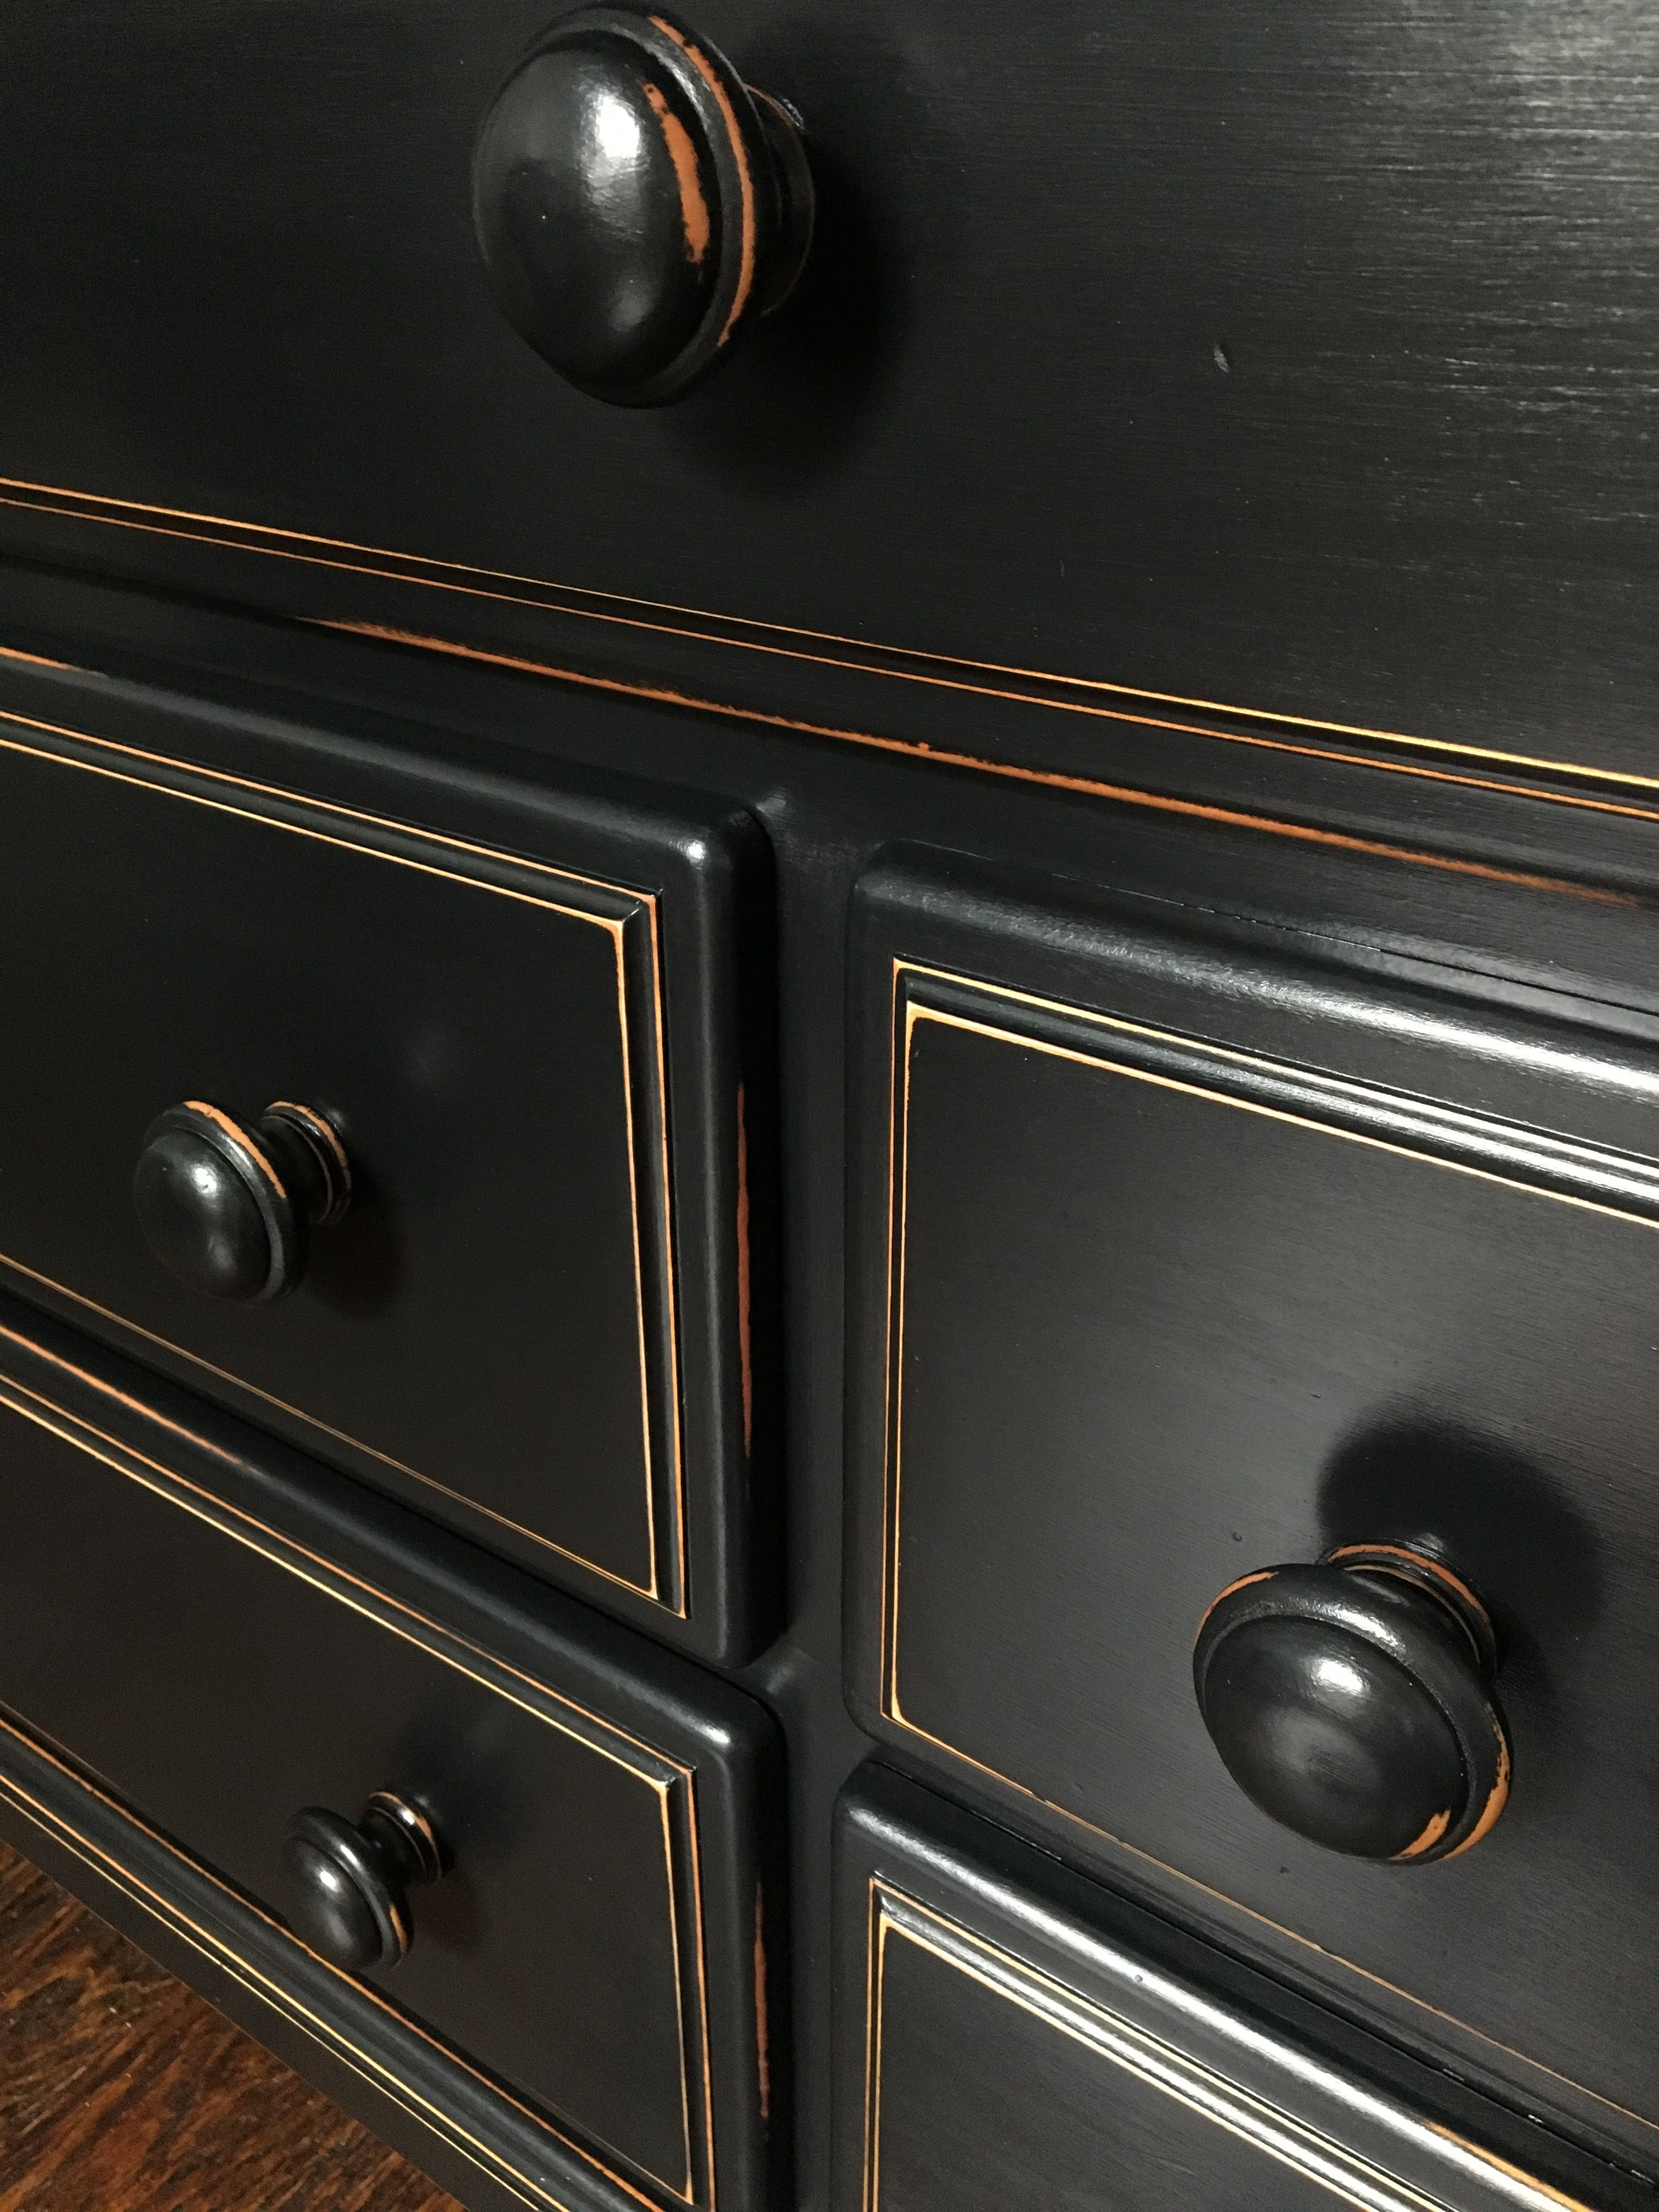 General Finishes Milk Paint in Lamp Black and Semi Gloss ...